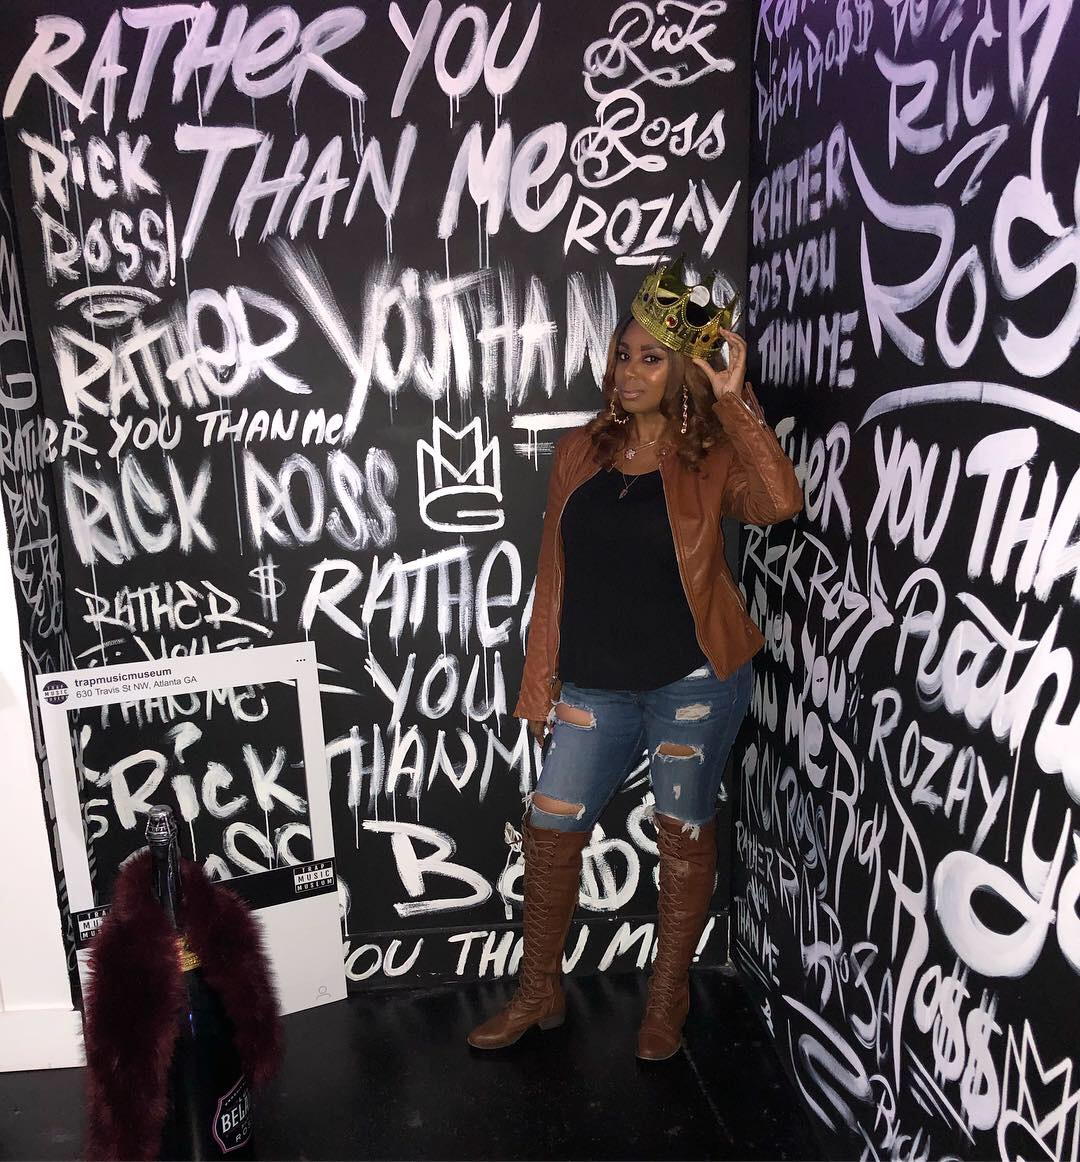 Jennifer J at the Rick Ross exhibit at the Trap Music Museum.